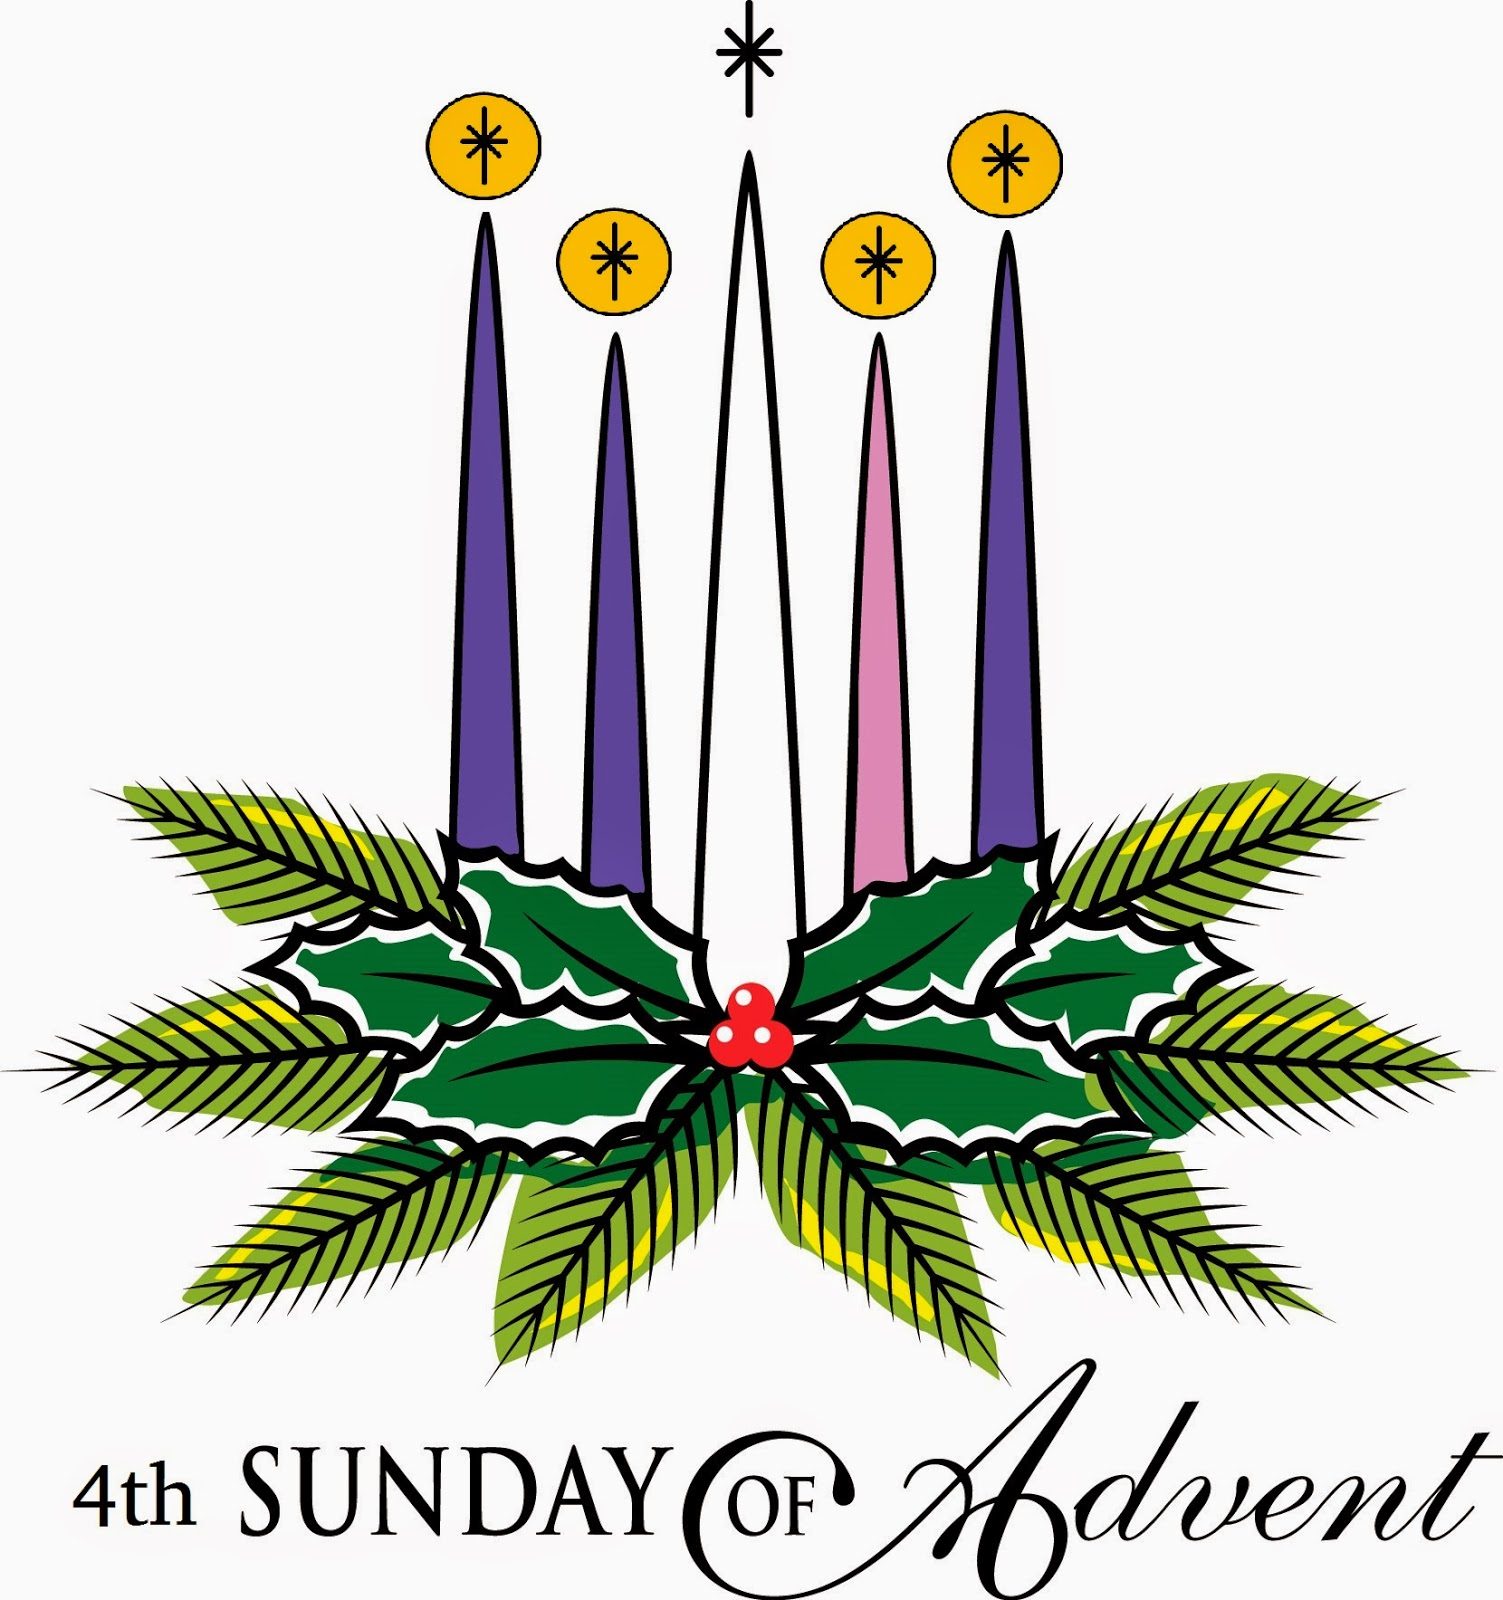 Advent clipart 1st, Picture #34957 advent clipart 1st.